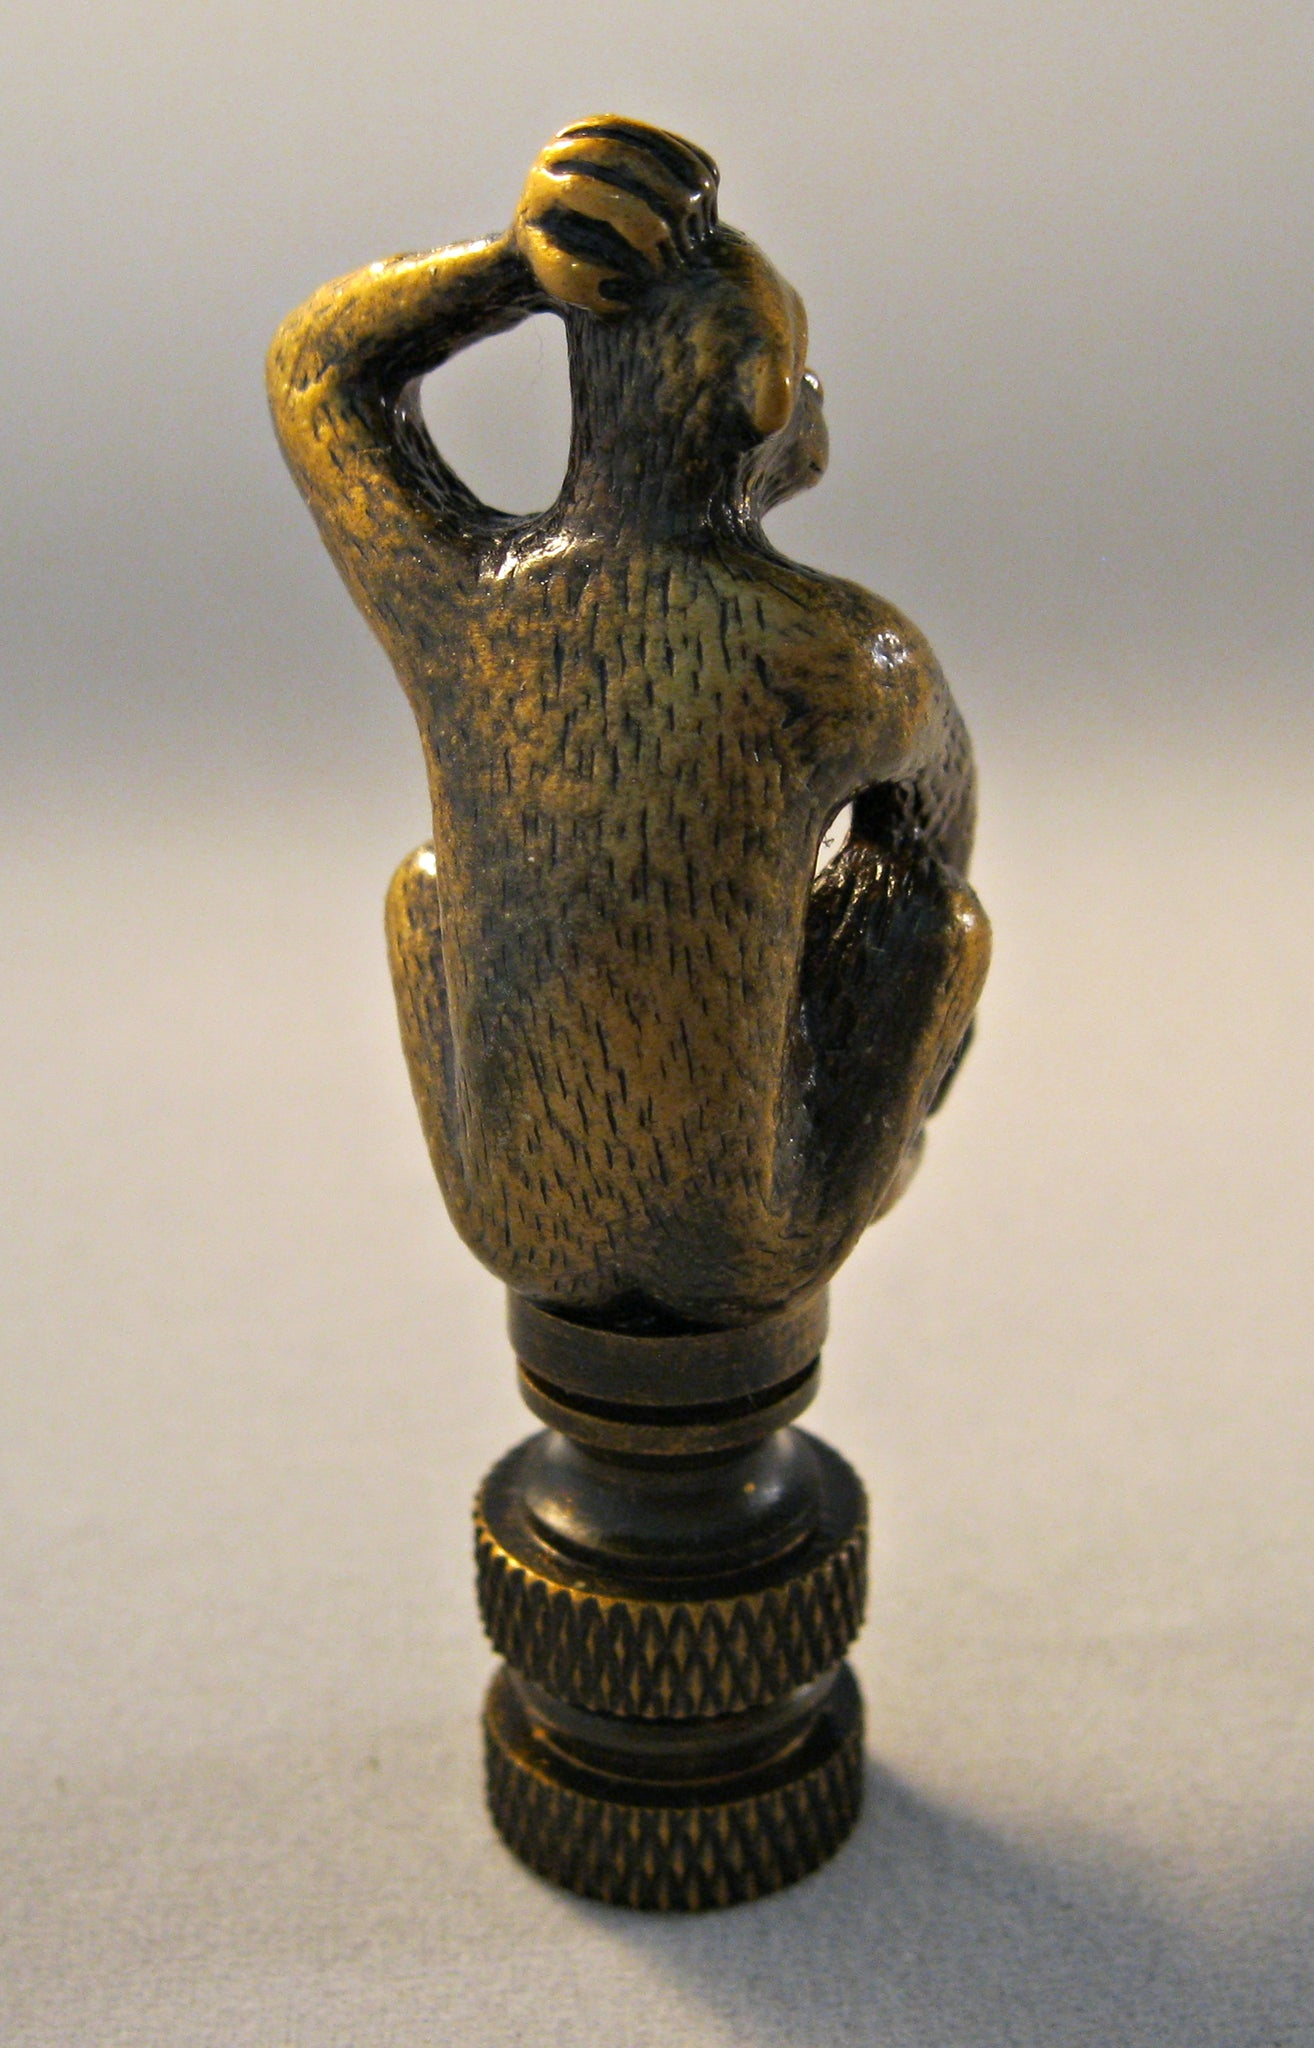 Lamp Finial-MONKEY-Aged Brass Finish Highly detailed metal casting